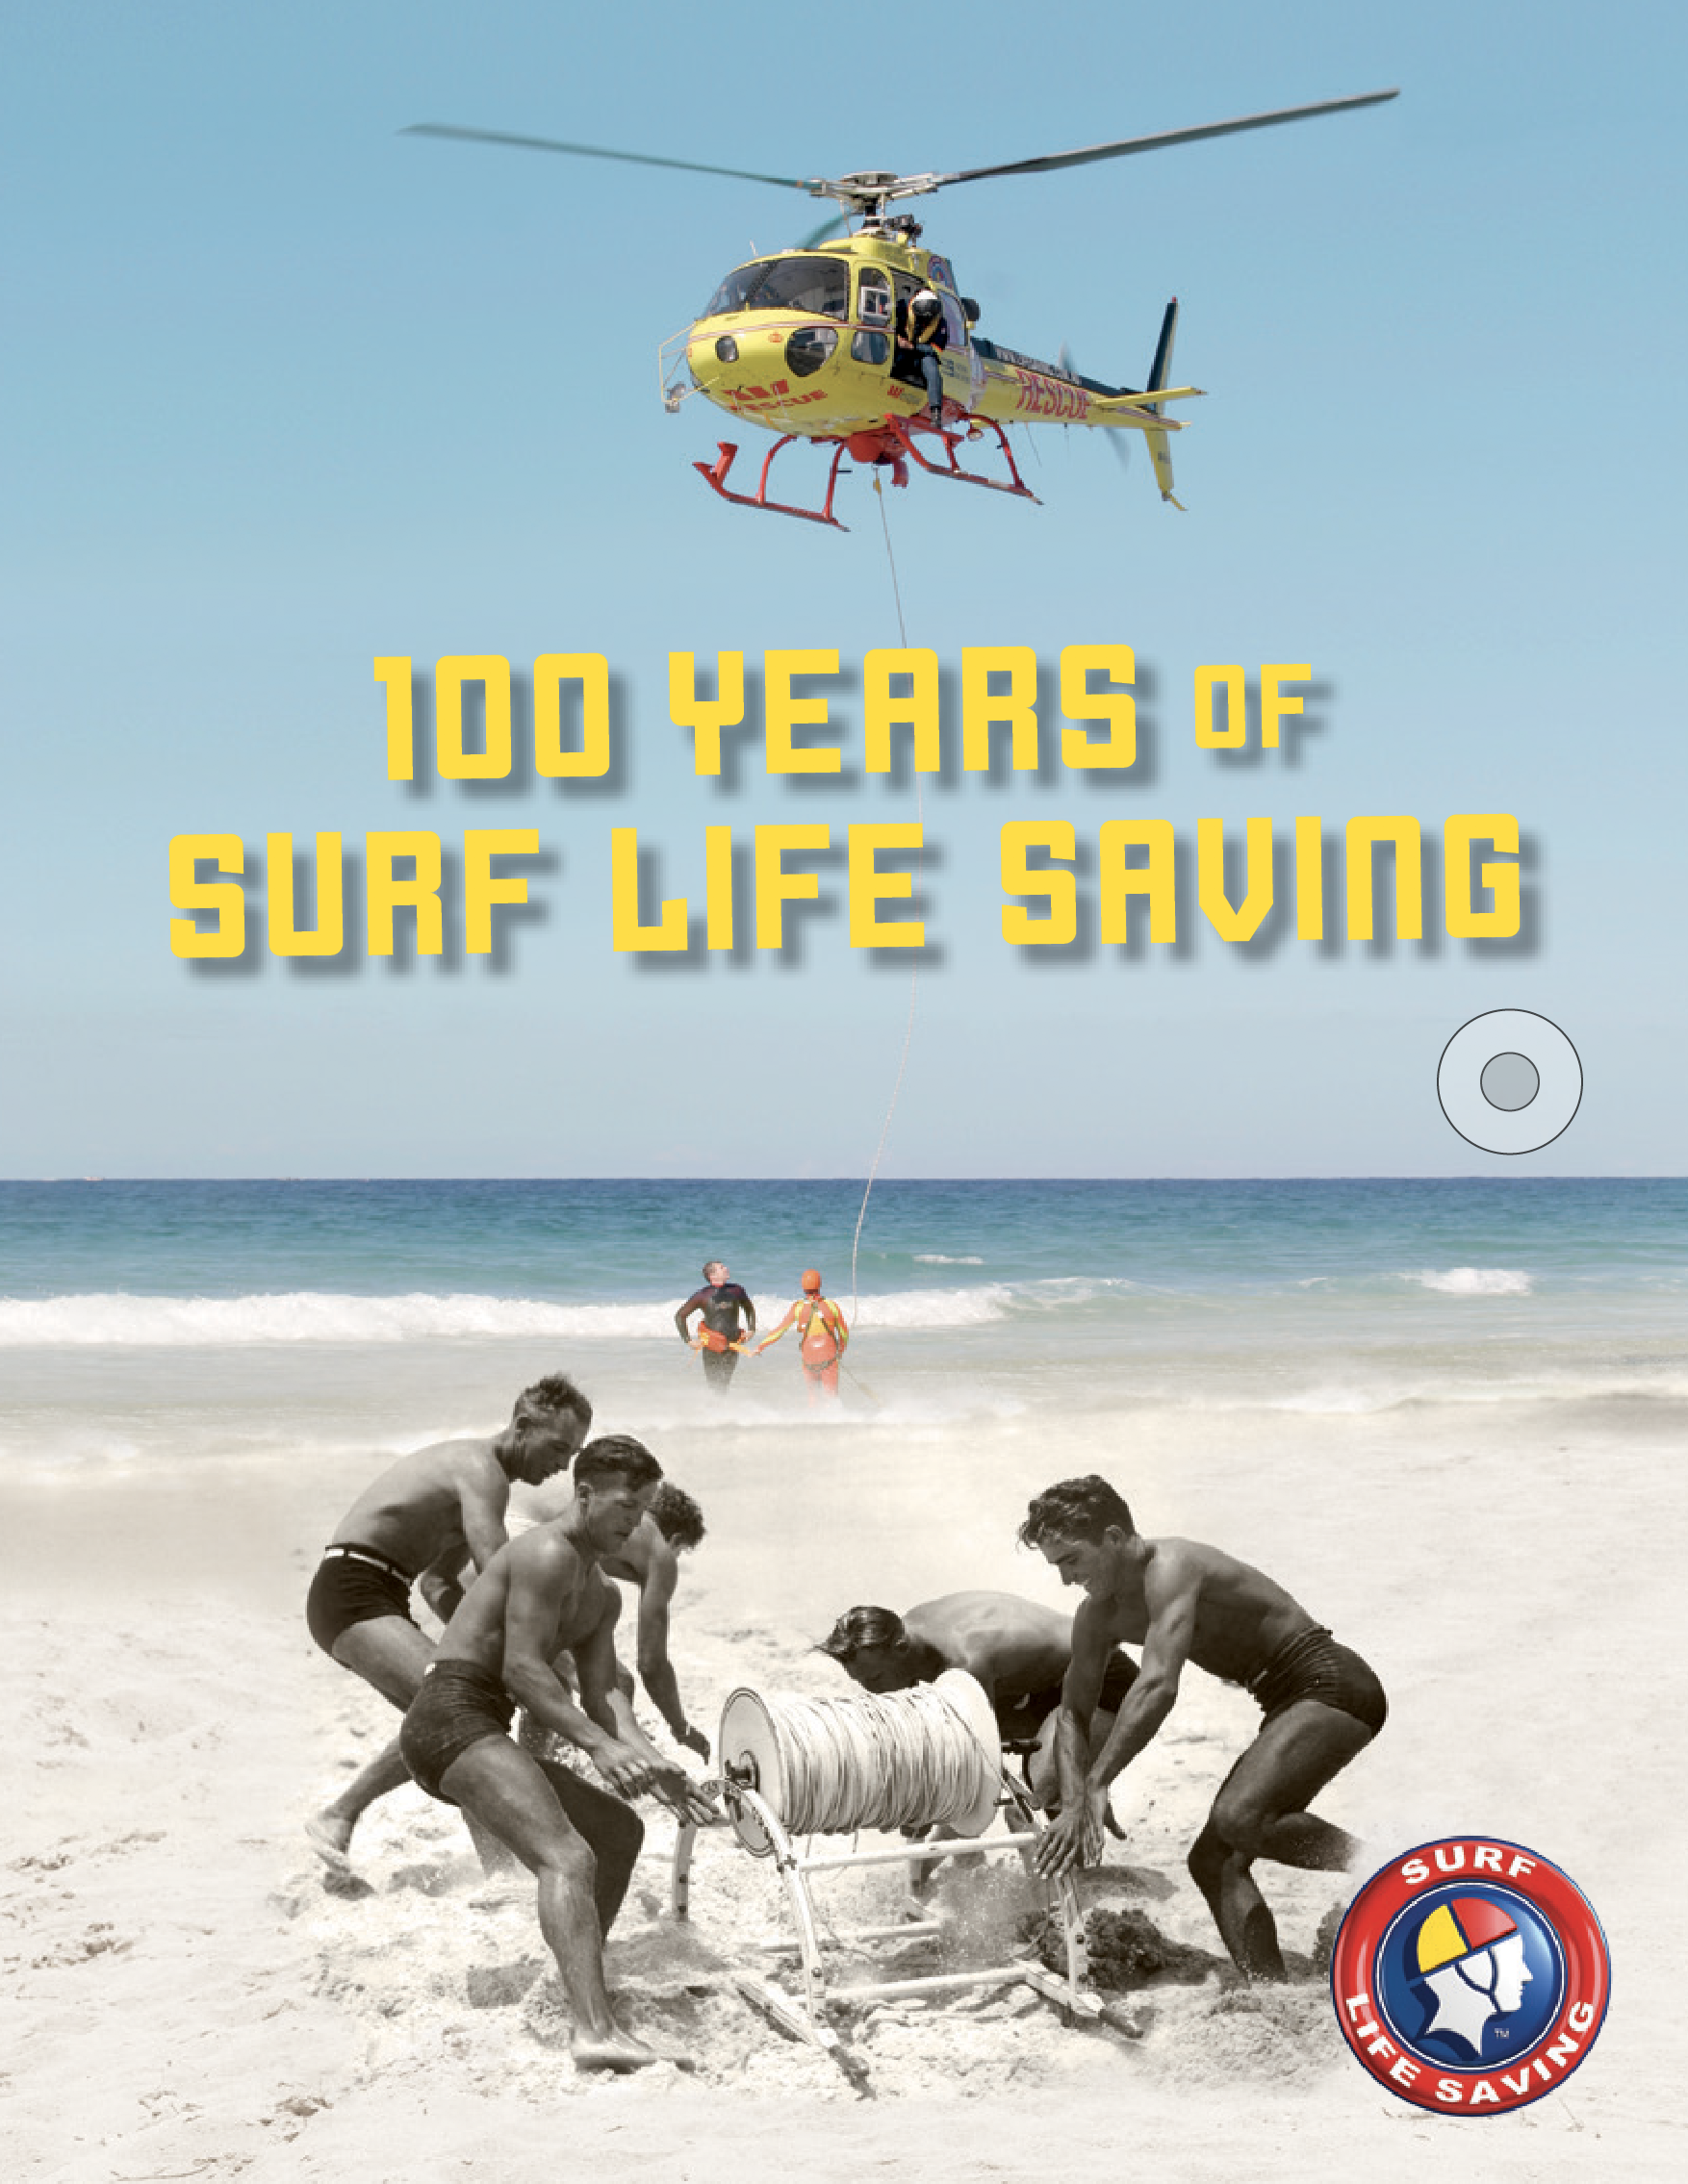 Surf Life Saving Association